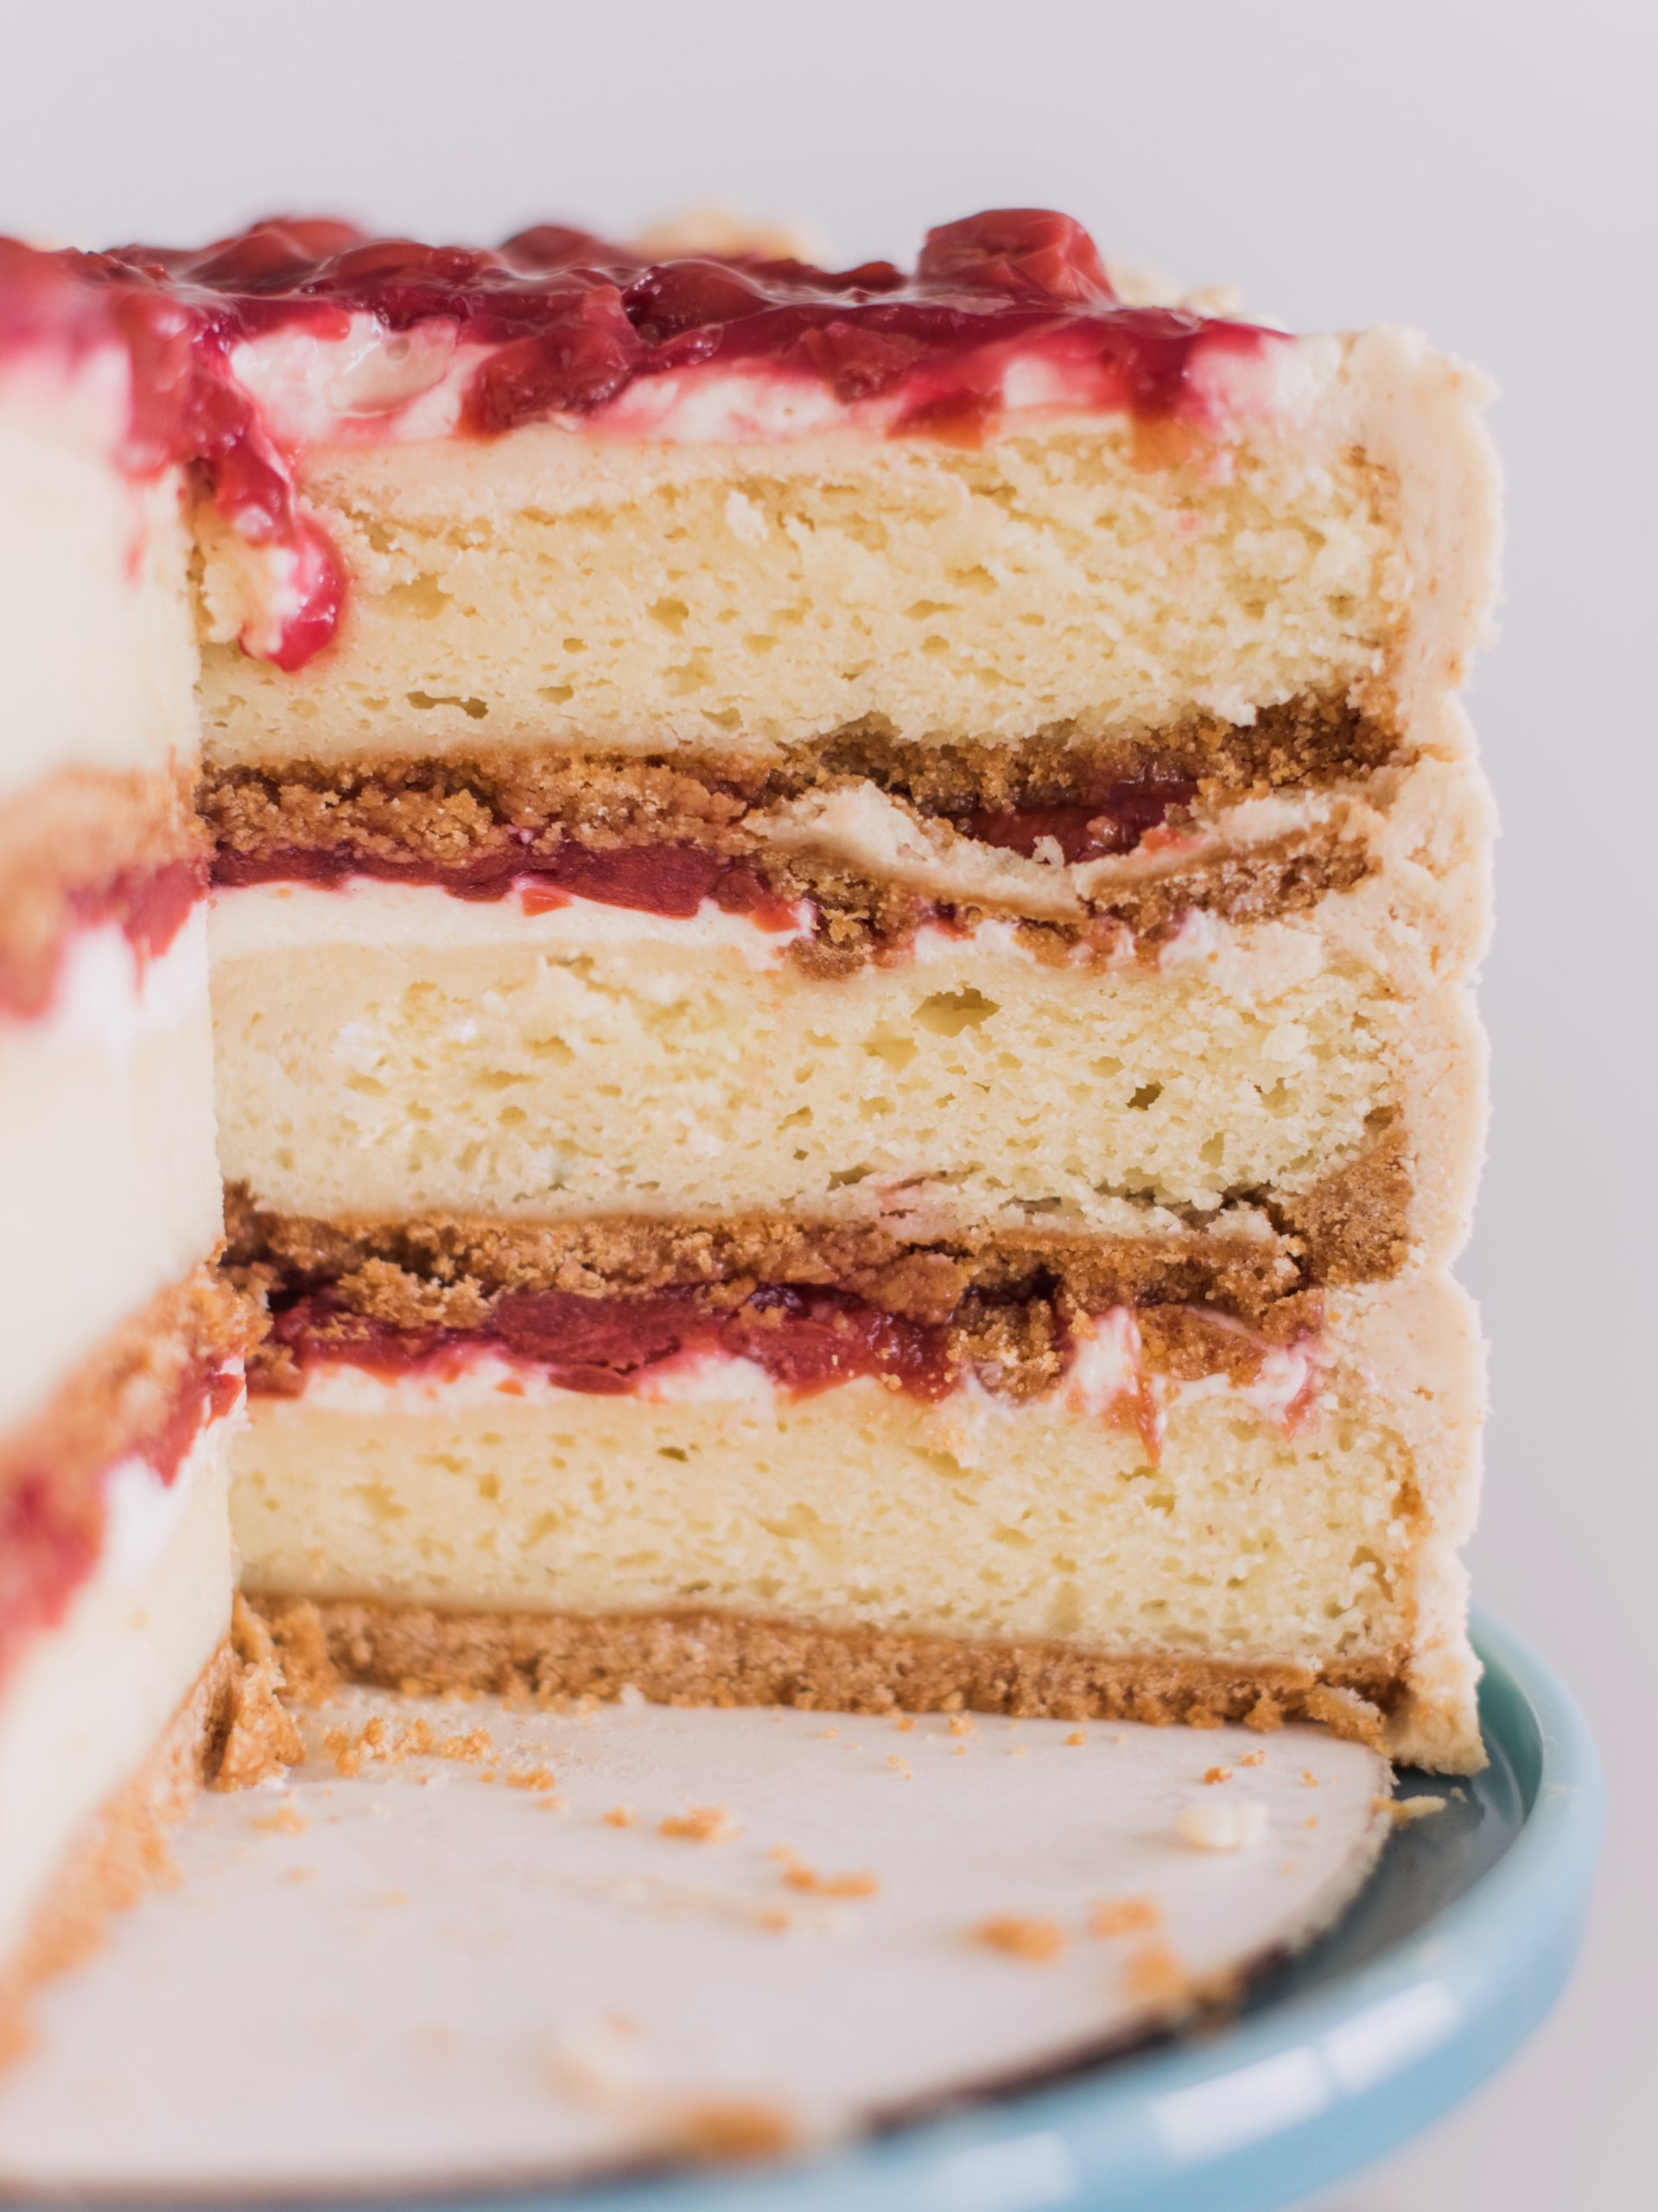 Cherry Cheese Pie Cake - dig into this delicious pie-inspired cake with layers of graham cracker, cream cheese cake, cheesecake filling, cherry pie filling and graham cracker buttercream. #cakebycourtney #cherrycheesepiecake #cherrypie #cherrycheesepie #bestsummercakerecipes #summercakerecipe #bestcakerecipes #summercakes #cherrypiecake #cherrydessert #summerdessert #howtomakebuttercreamfrosting #howtomakecake